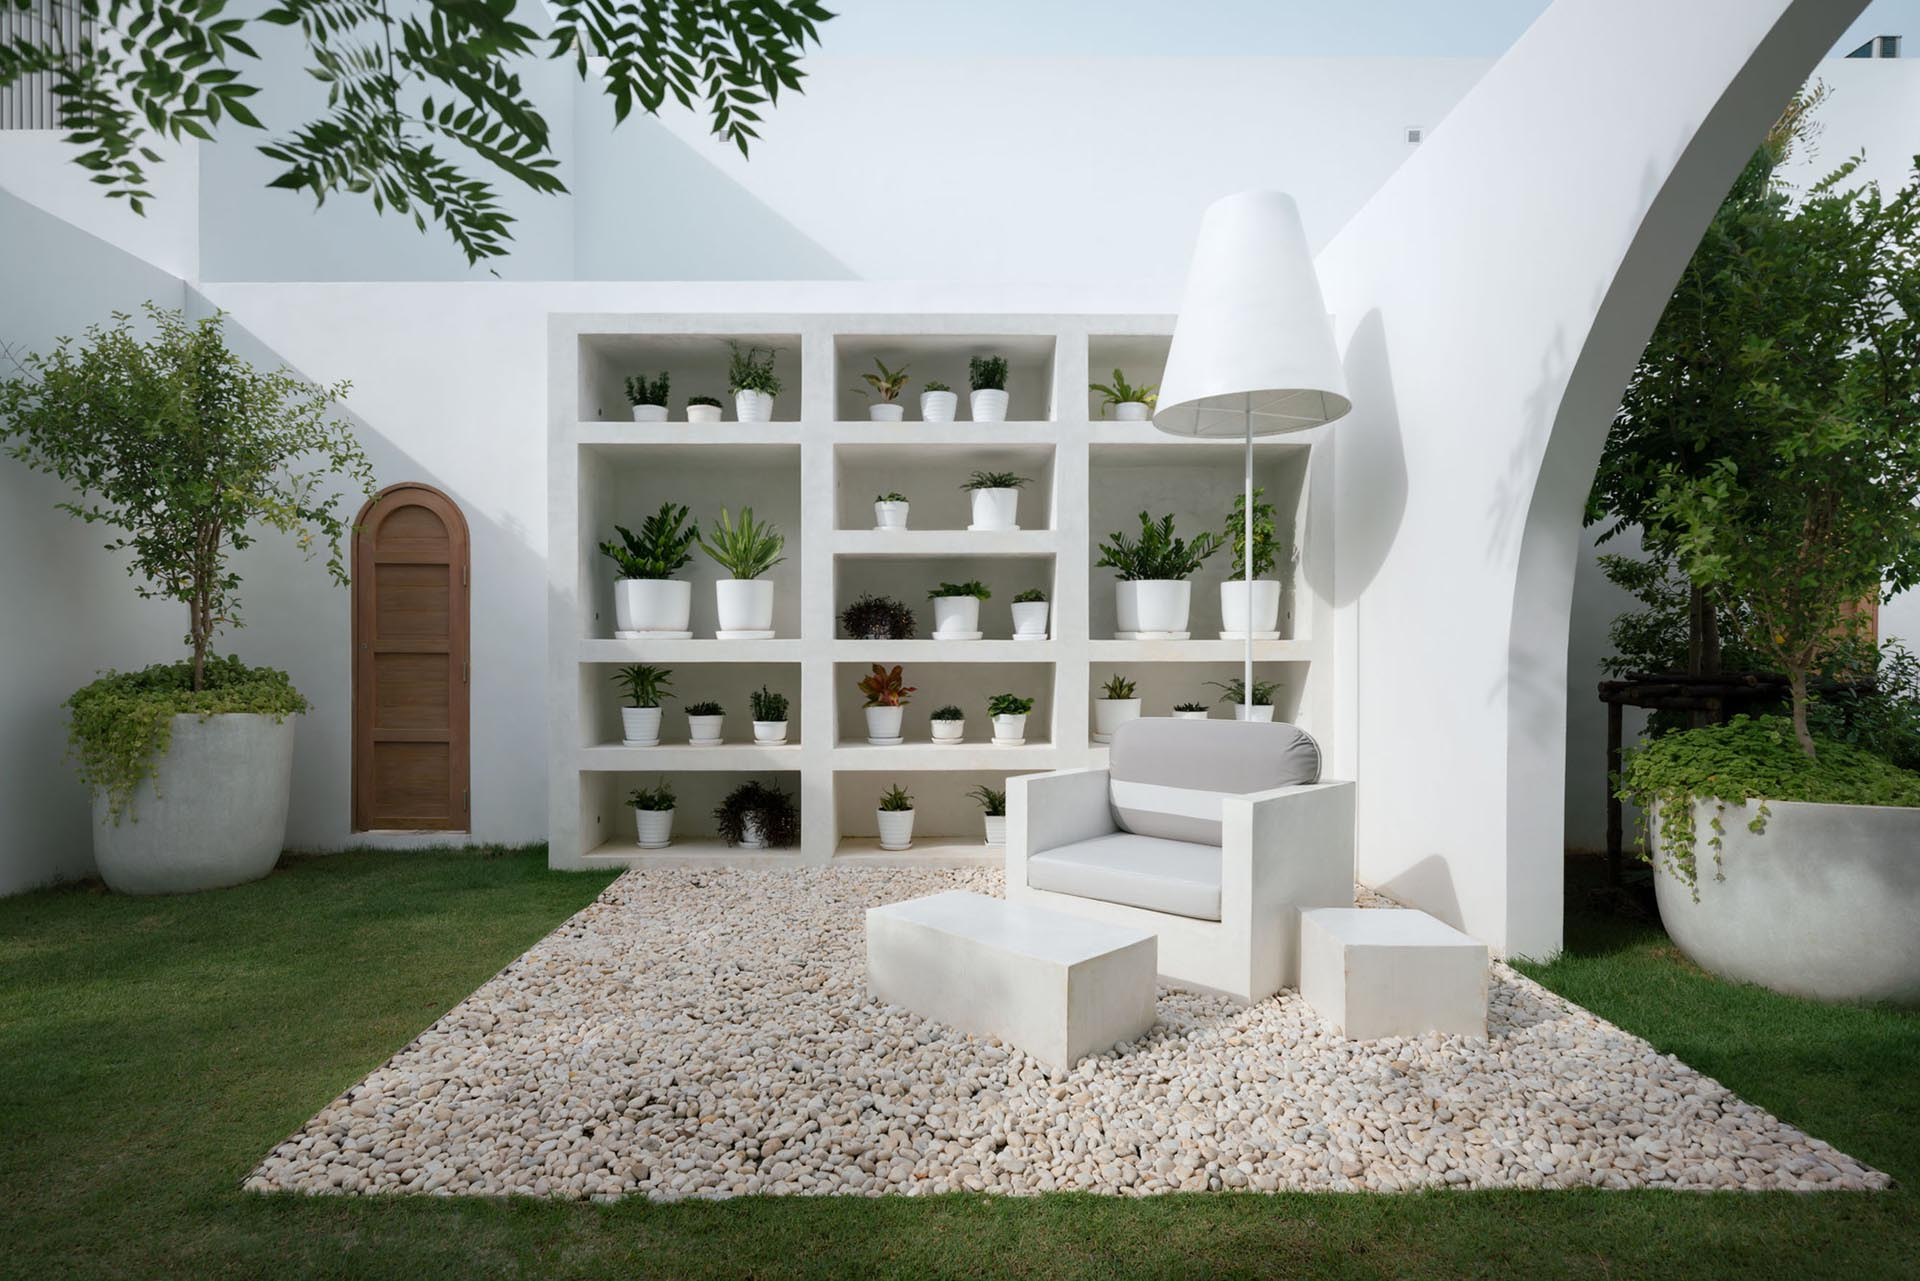 This Landscaped Outdoor Space Includes A Living Room With A Bookshelf For Plants